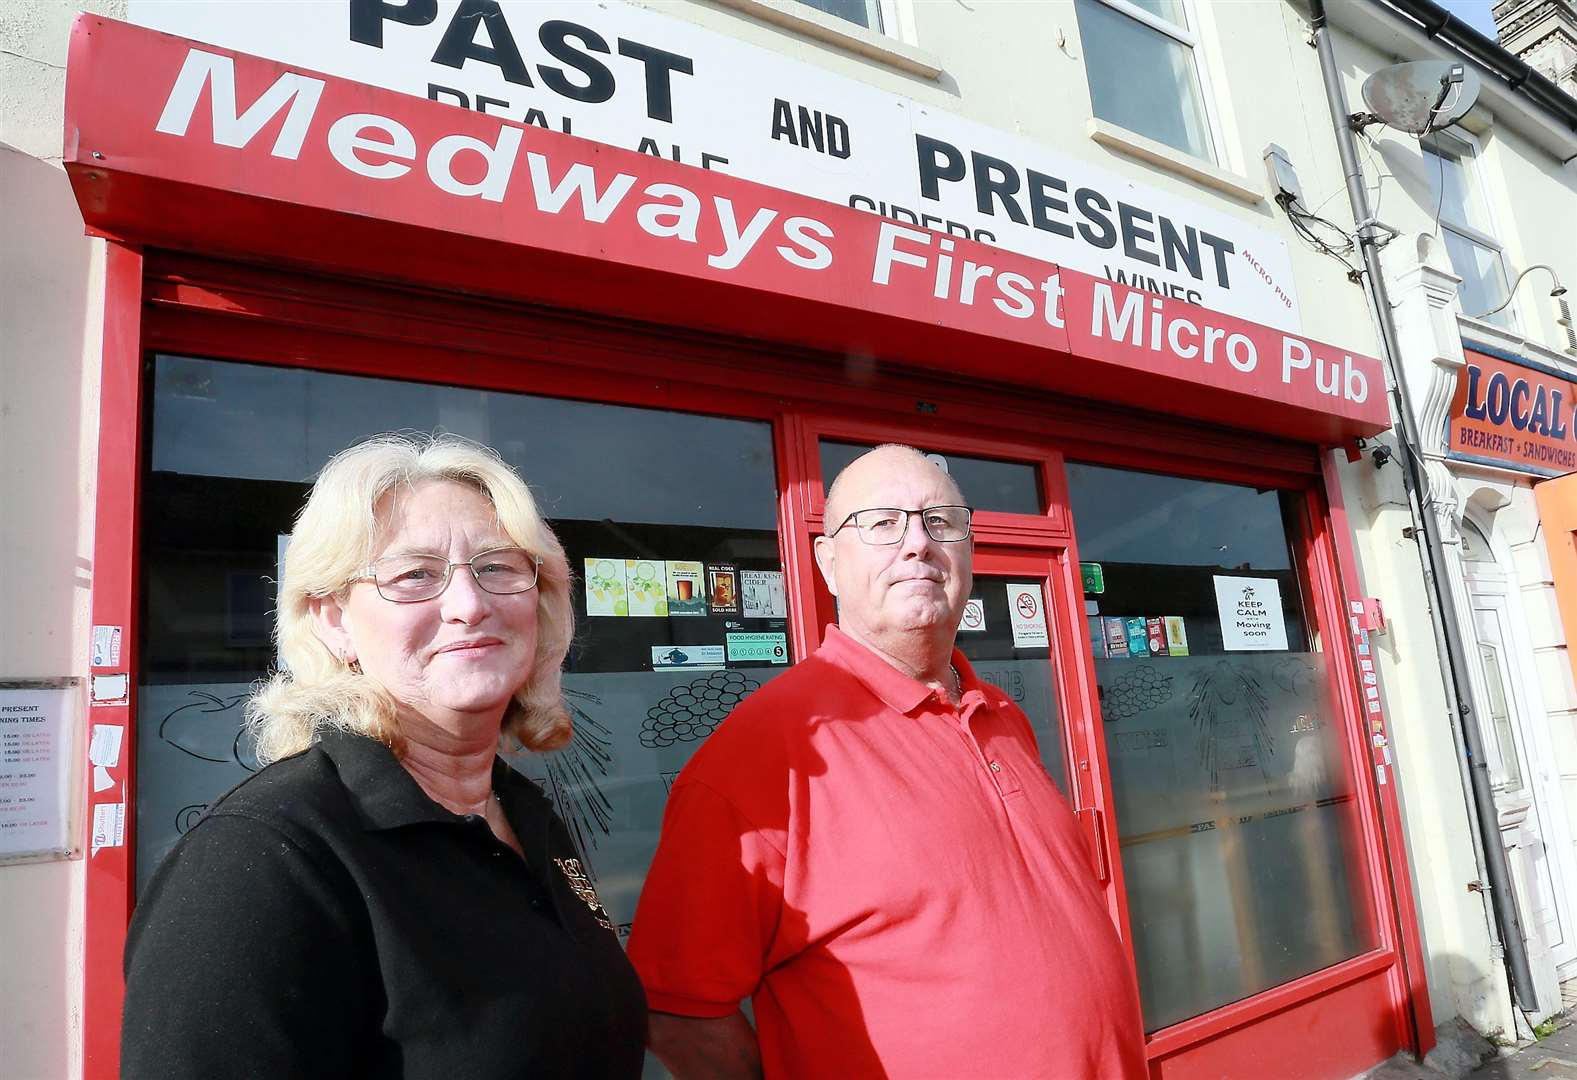 The miniature boozer has proved so popular they are now looking to move to bigger premises down the road